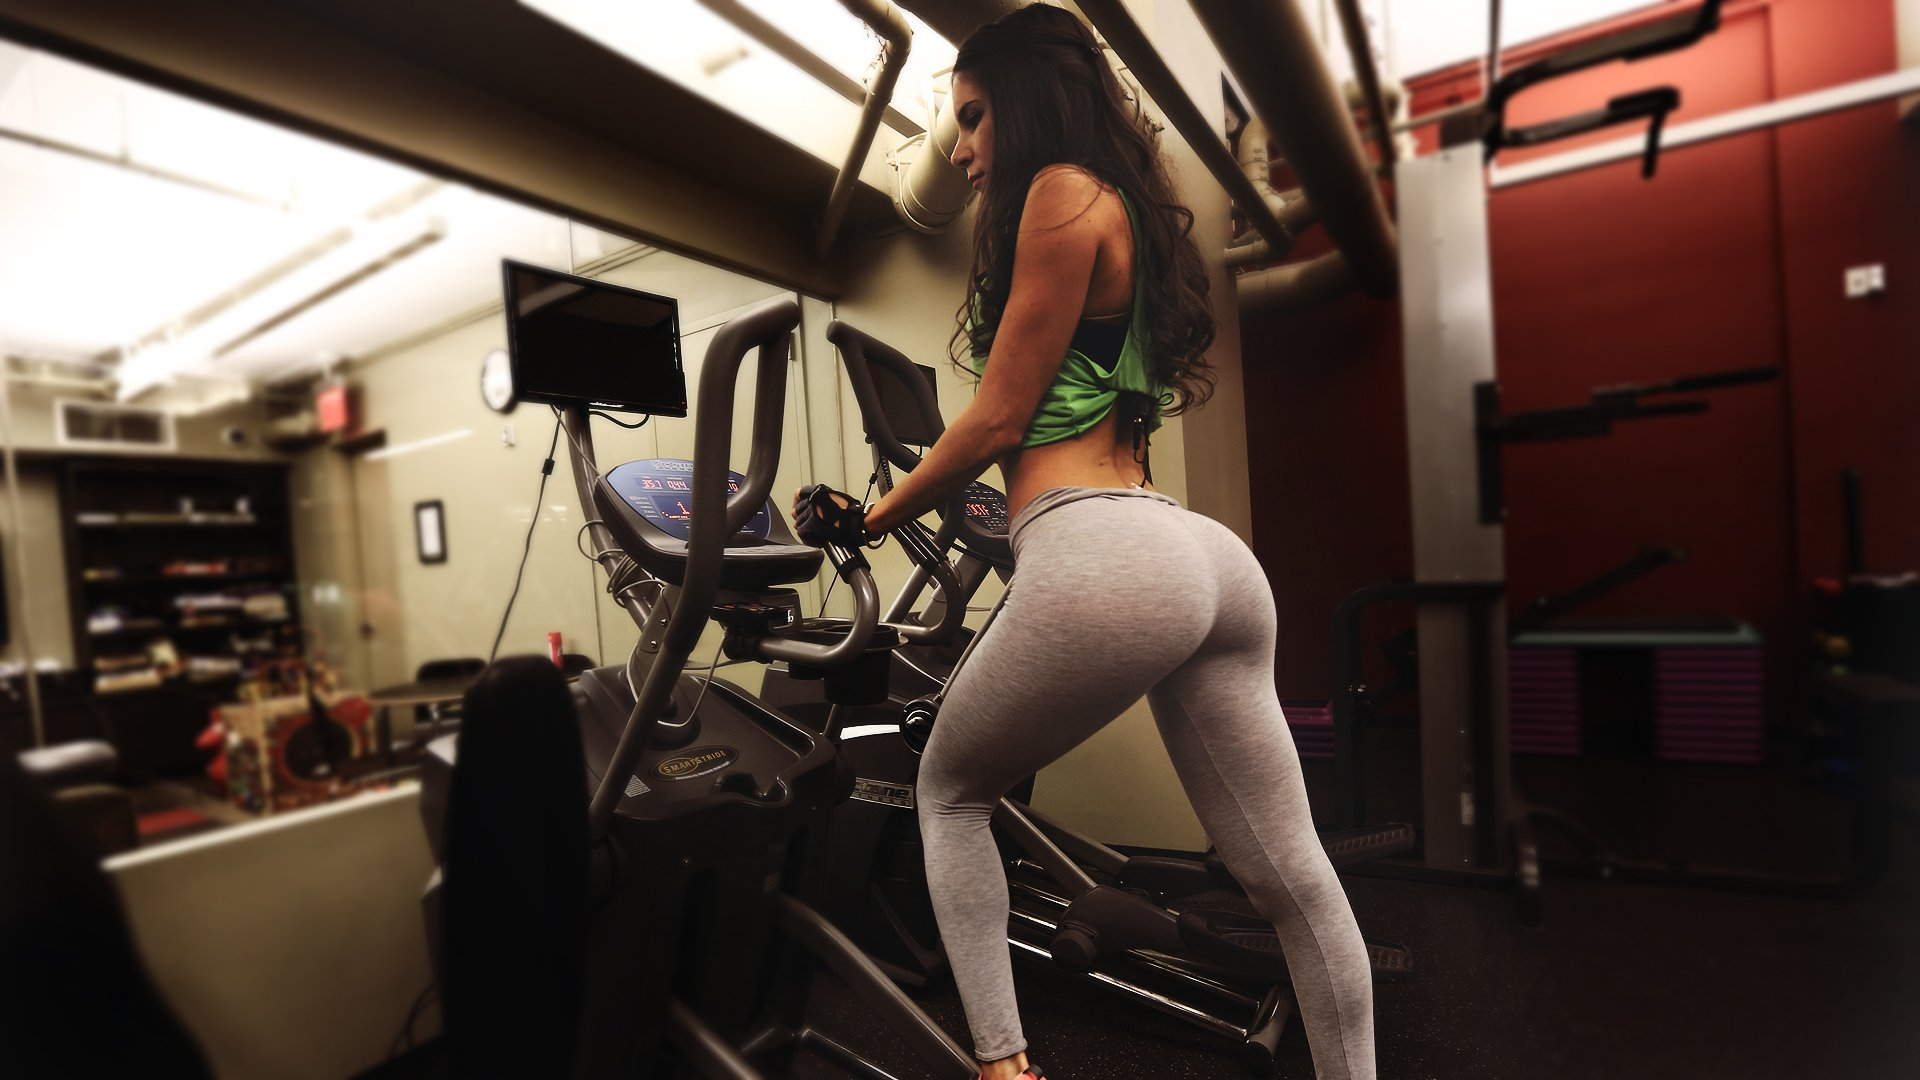 SPORTS - girl fitness gym exercise bodybuilding wallpaper